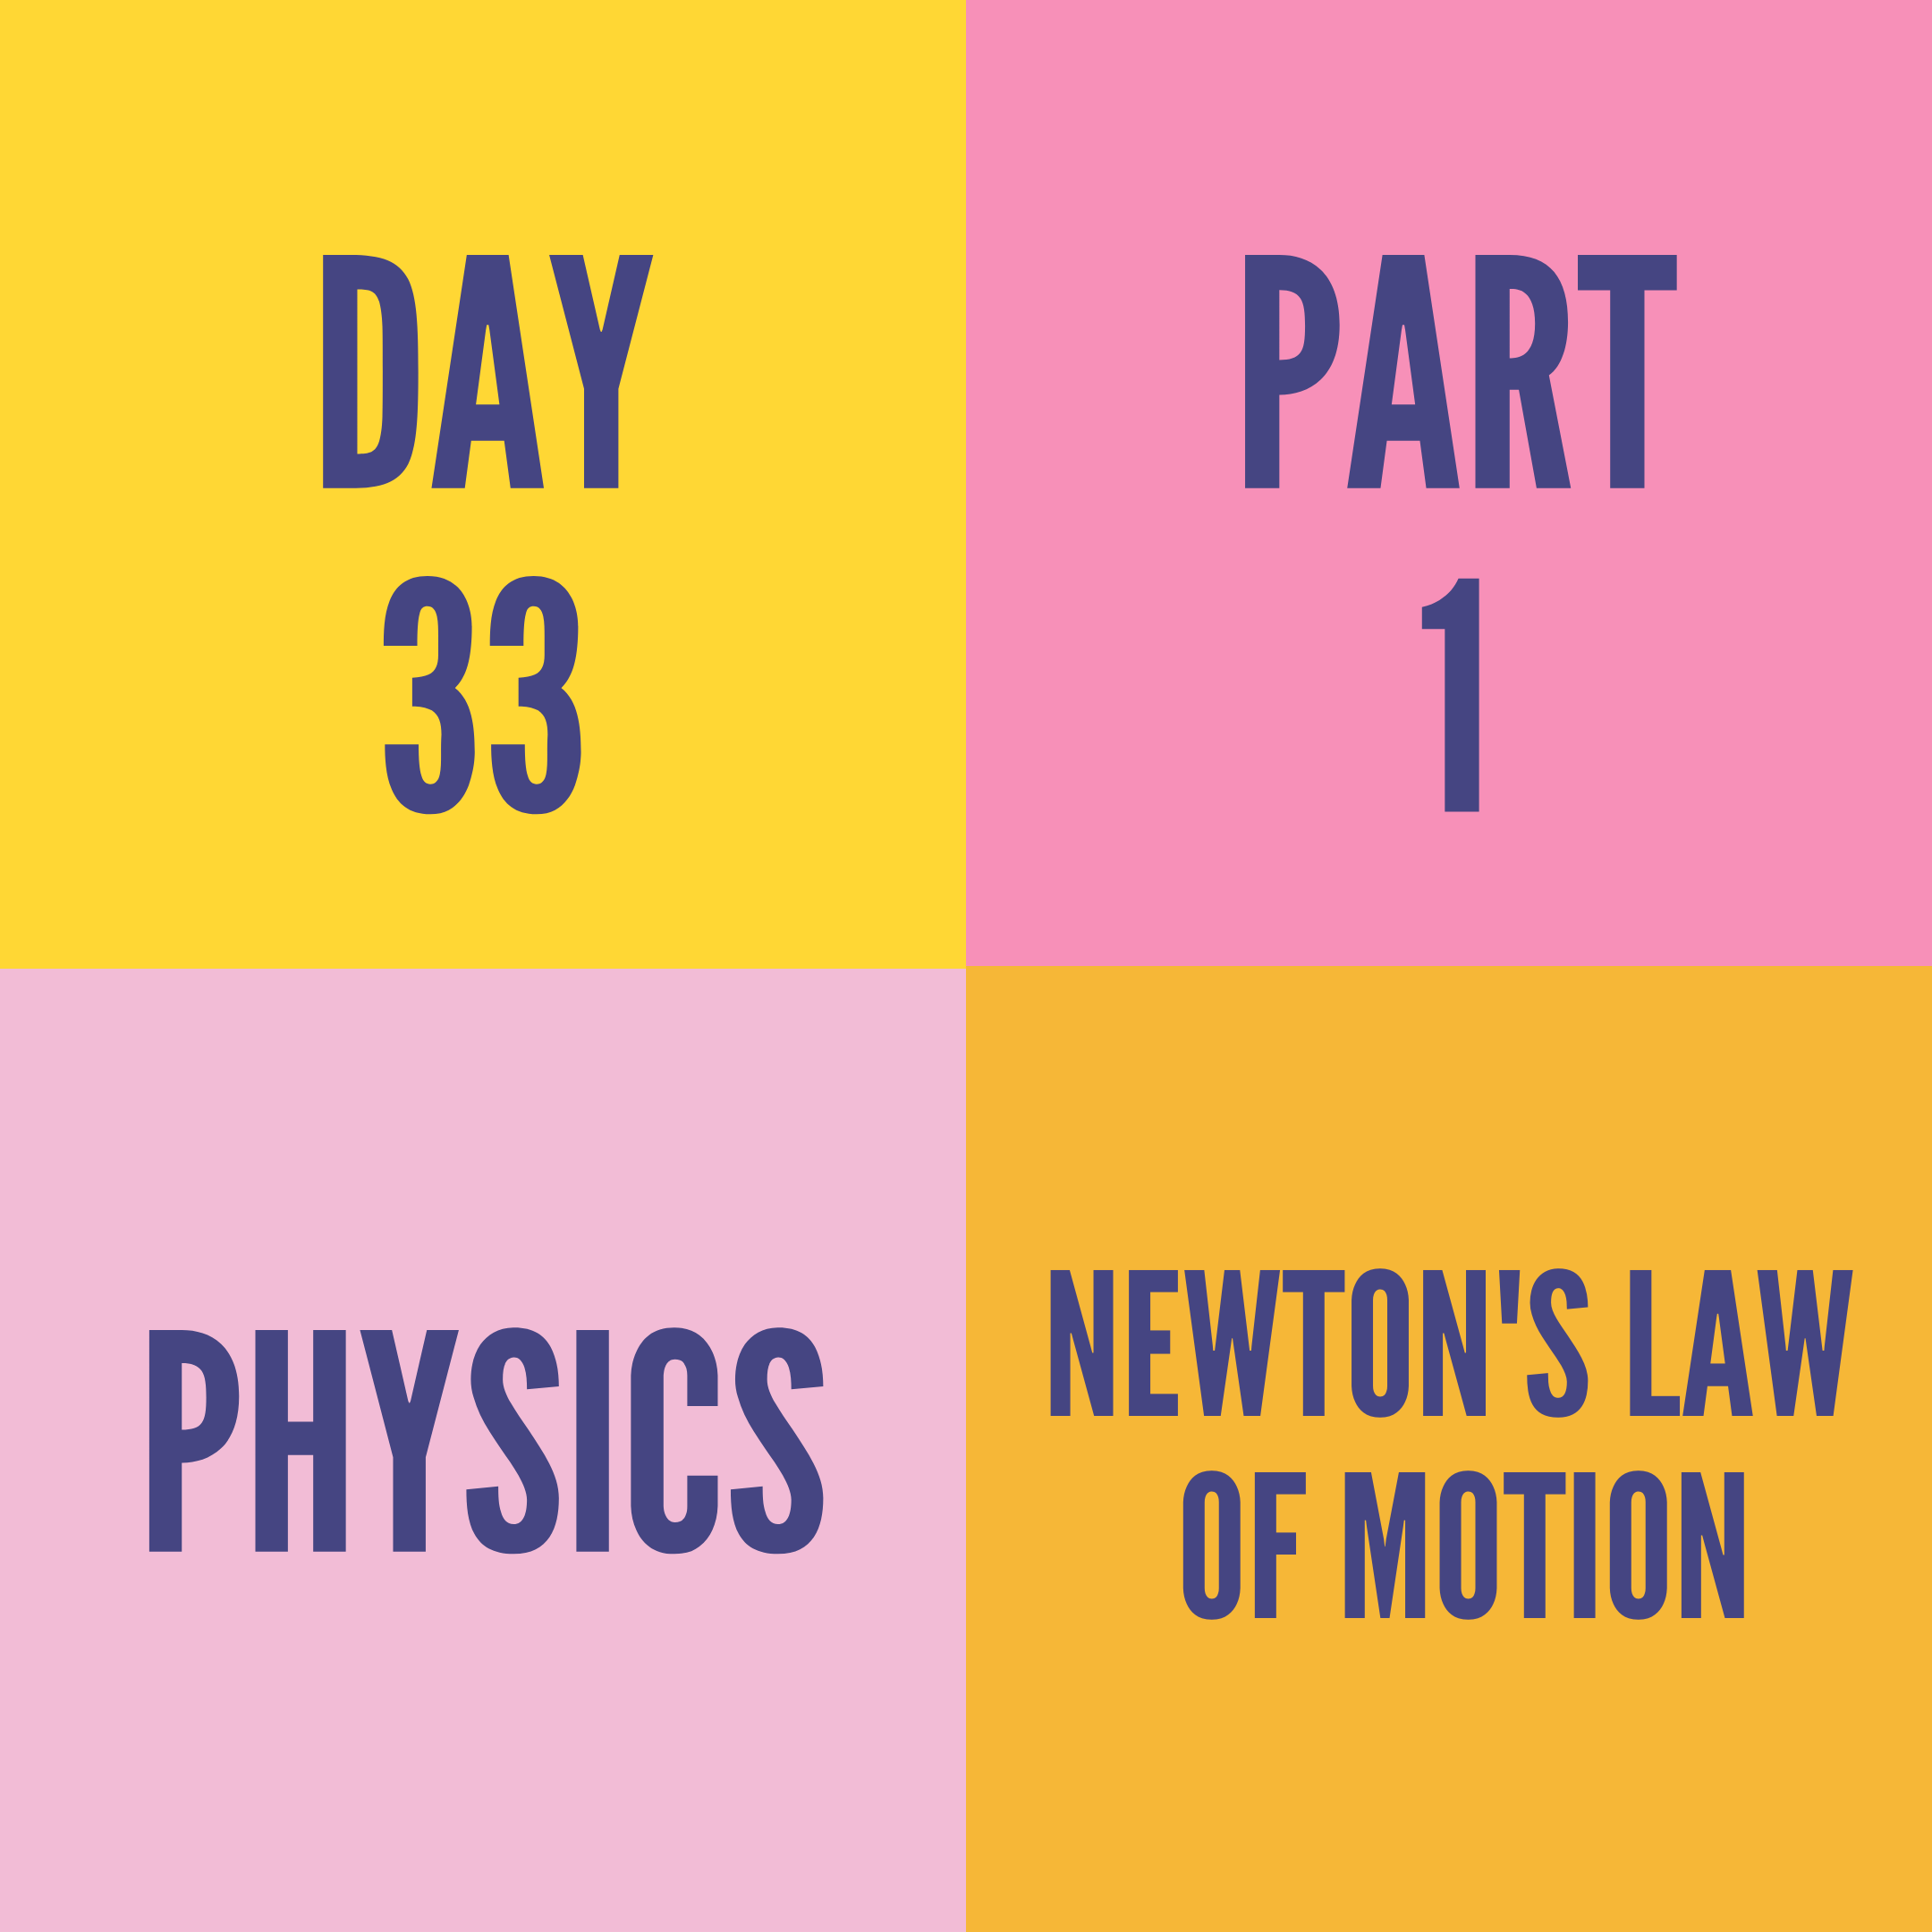 DAY-33 PART-1 NEWTON'S LAW OF MOTION